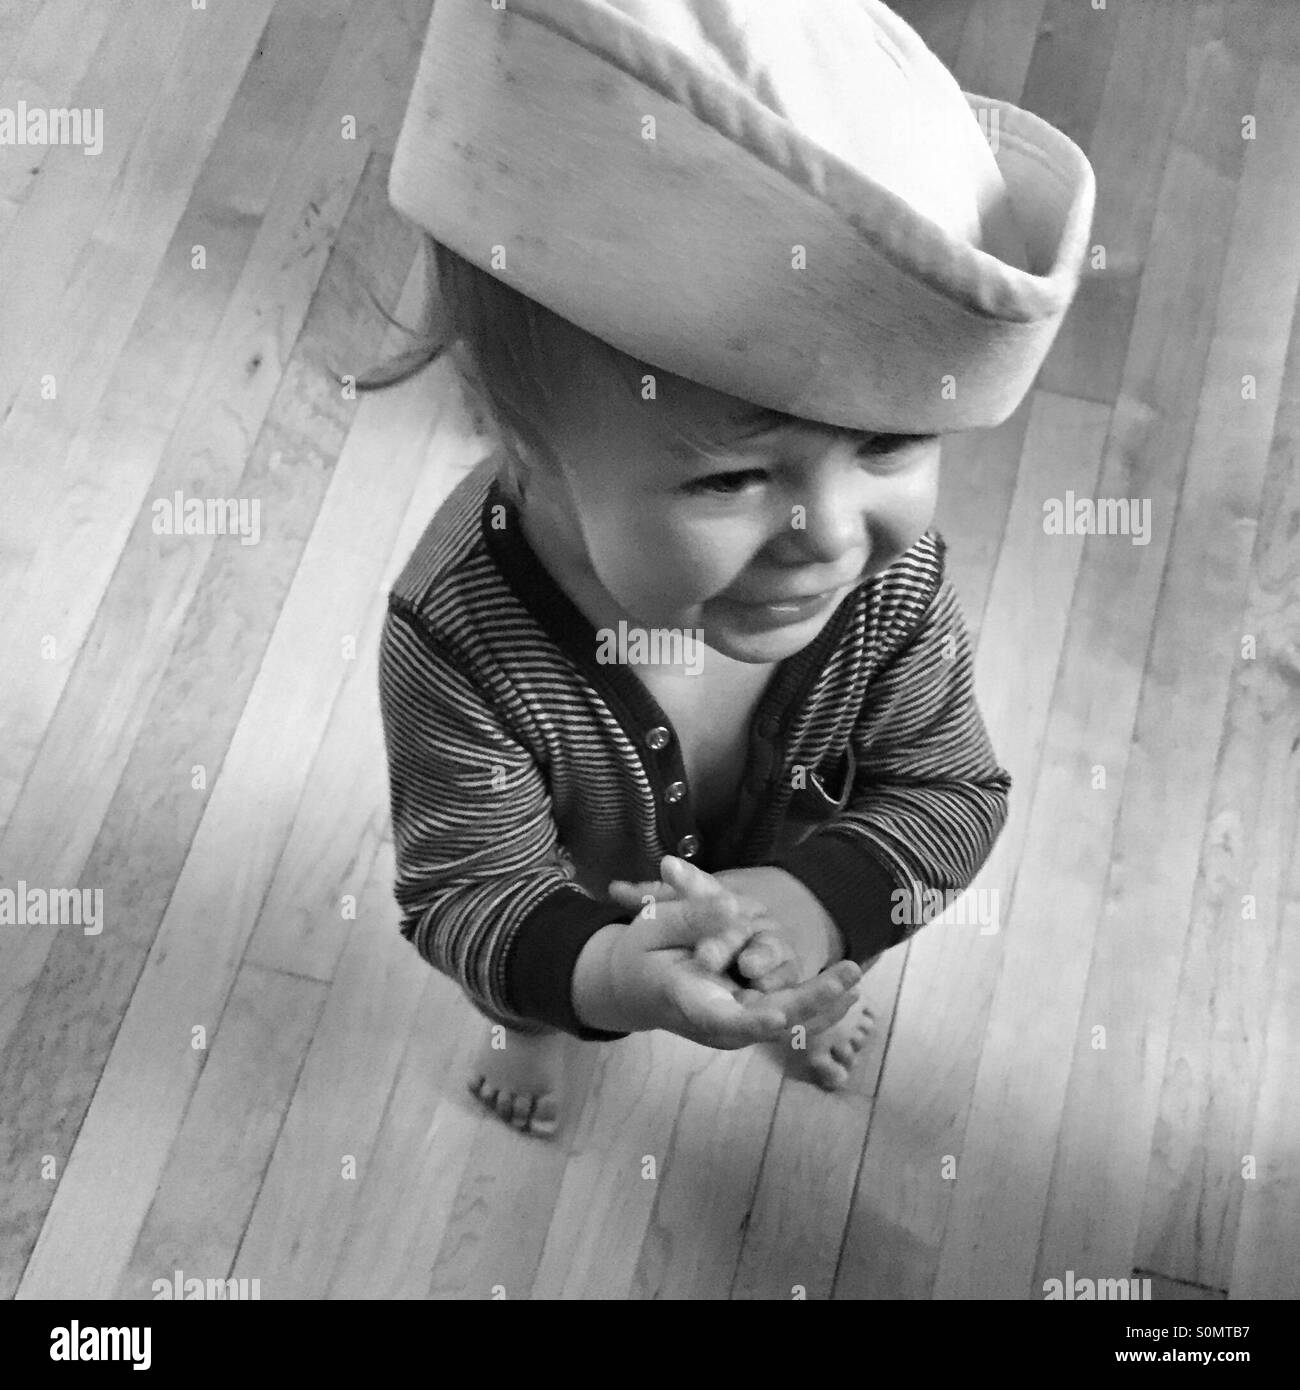 Black and white photo of a happy toddler wearing a uniform sailor's hat from the navy - Stock Image